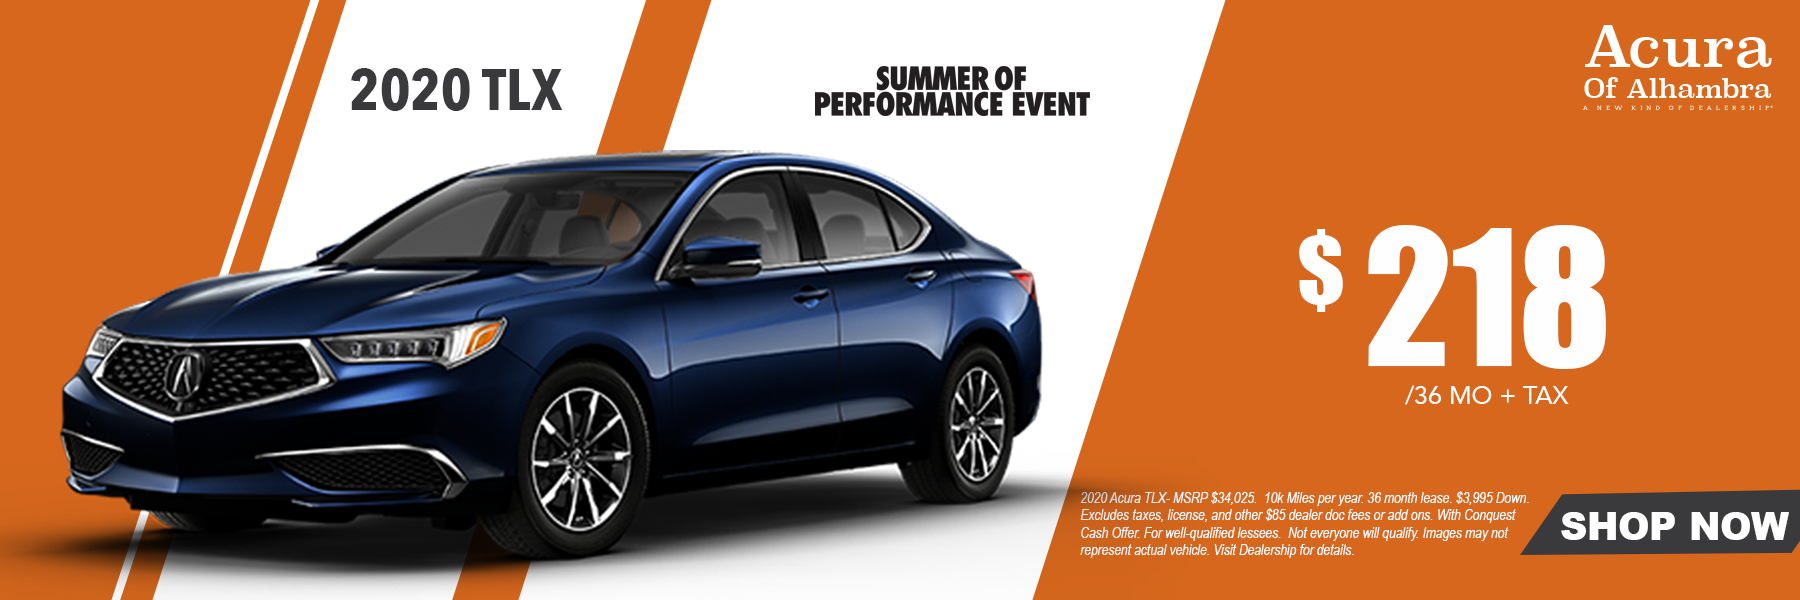 tlx summer